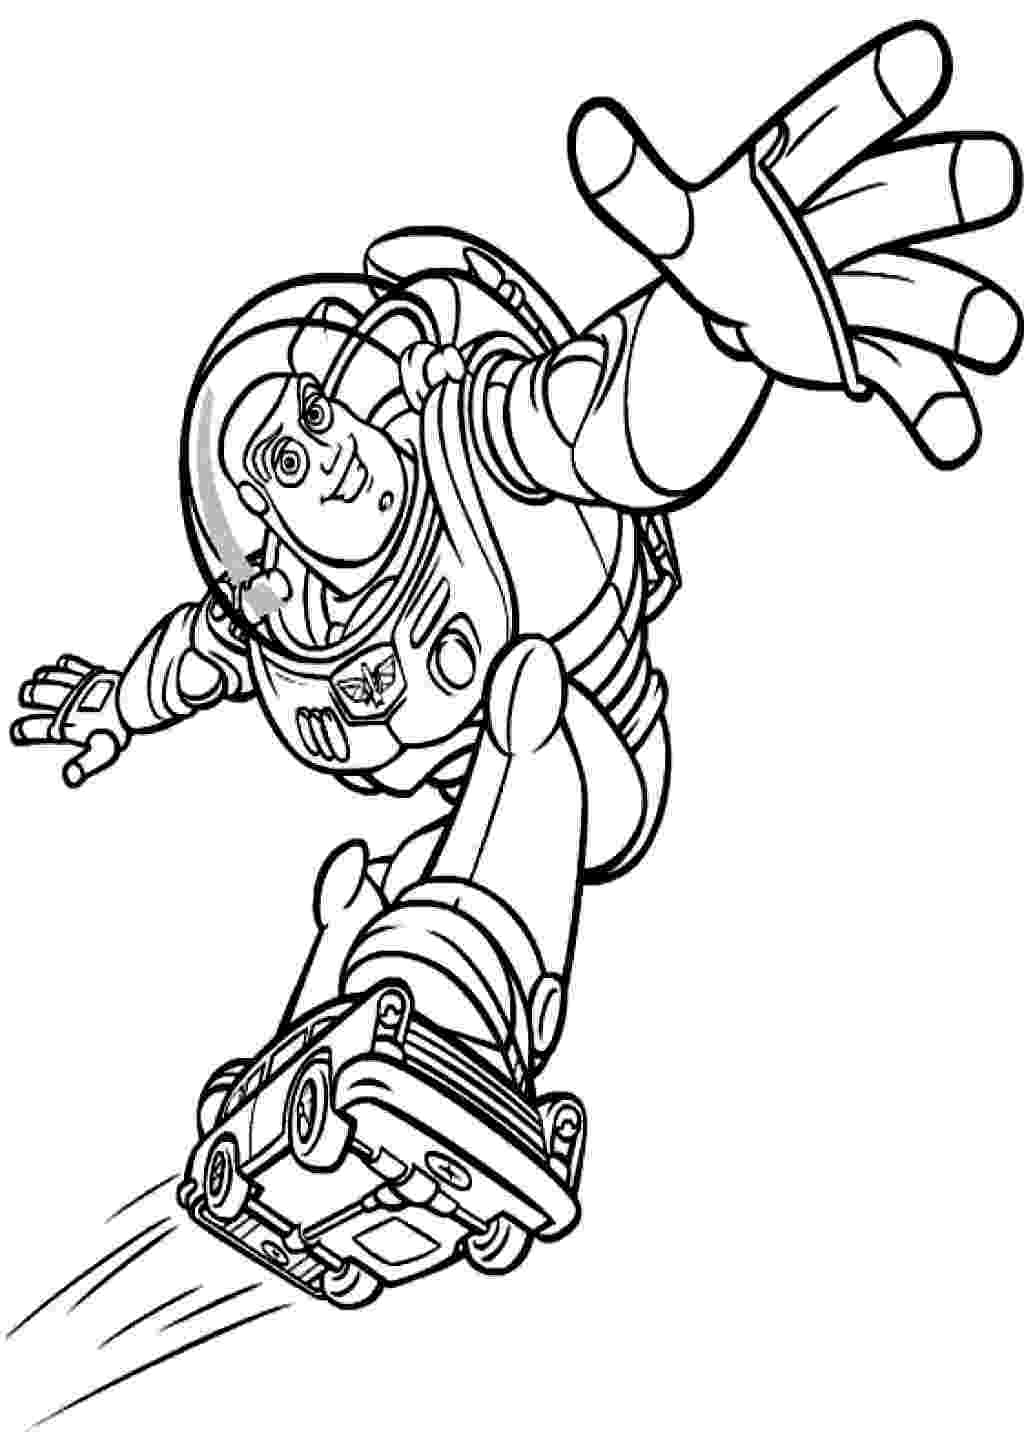 buzz lightyear coloring pages free printable buzz lightyear coloring pages for kids pages buzz coloring lightyear